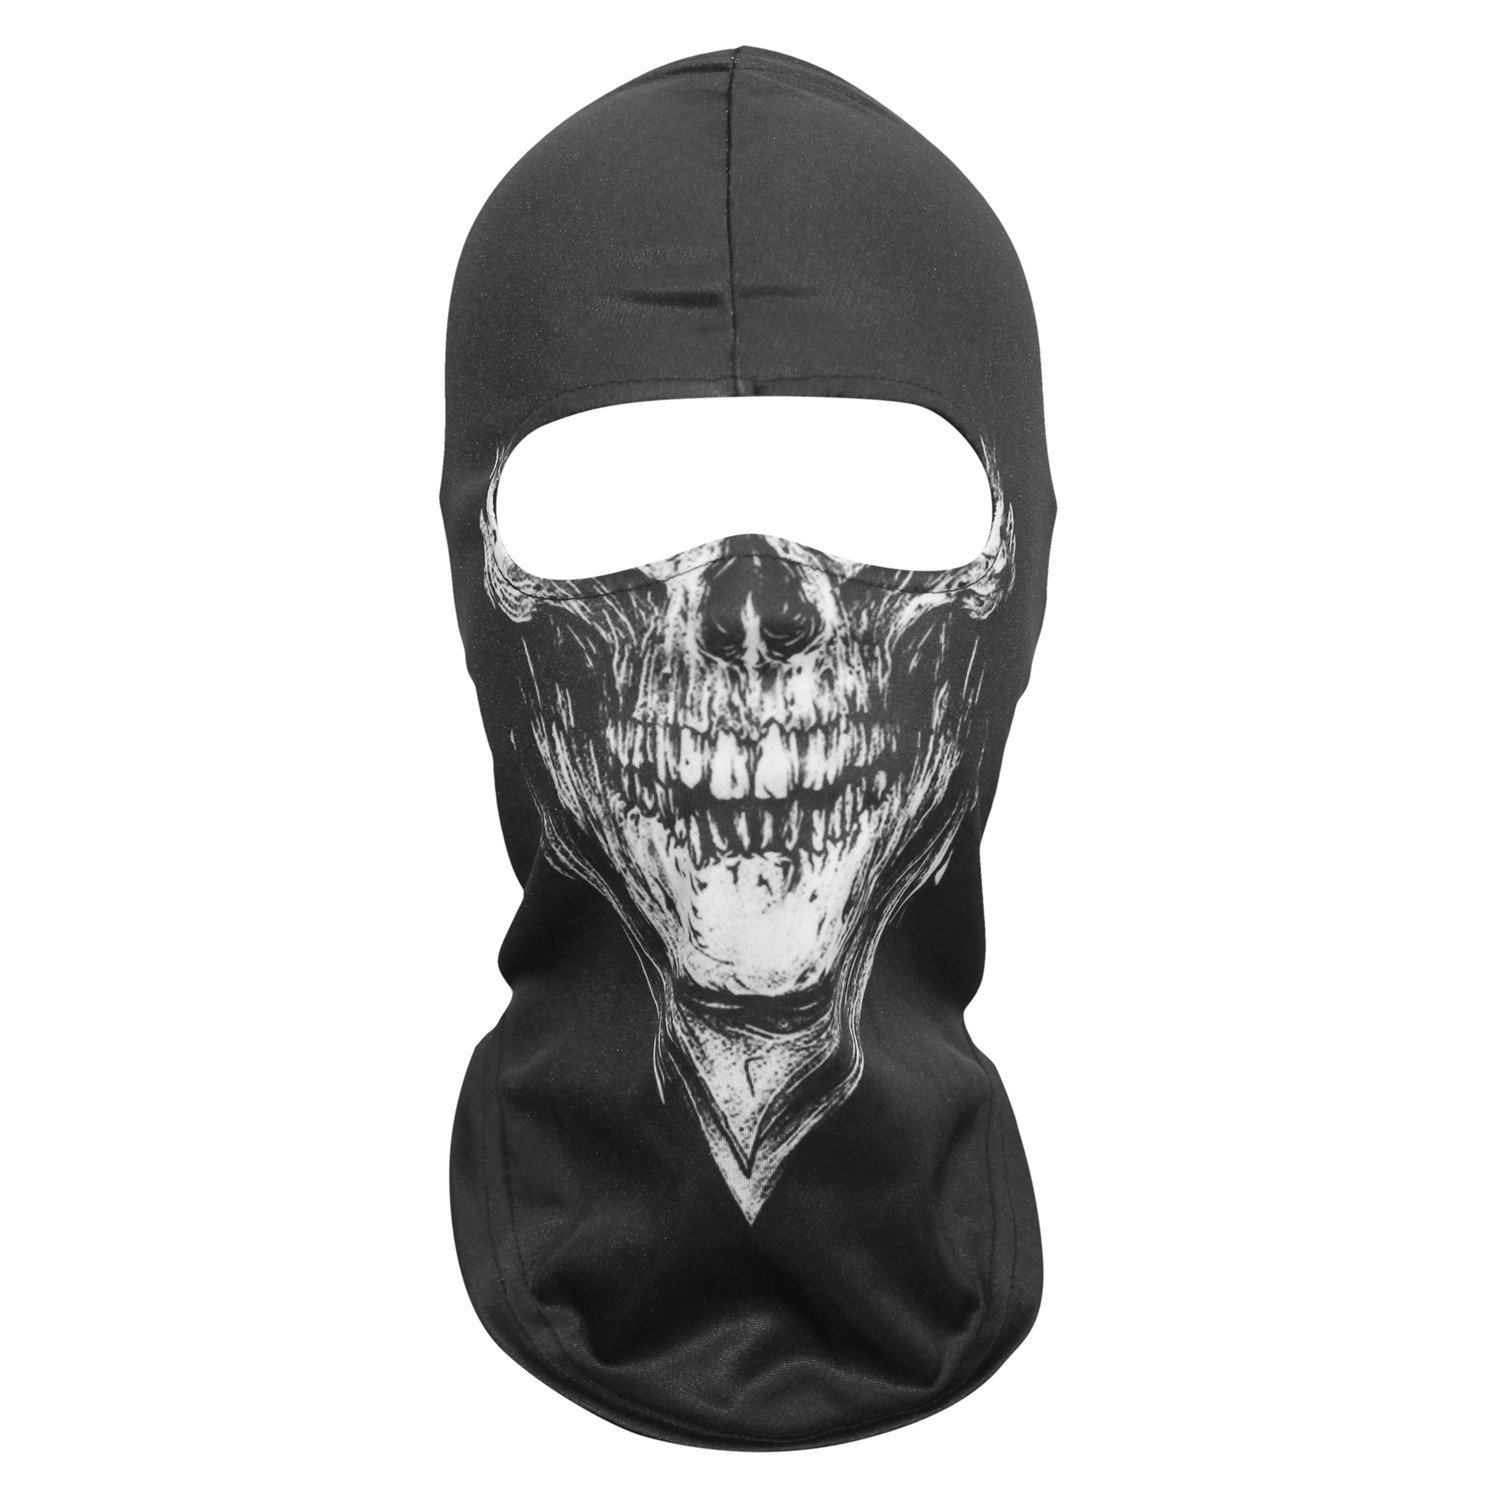 JIUSY 3D Skeleton Mask Scary Skull Balaclava Ghost Skull Cosplay Costume Halloween Party Full Face Mask